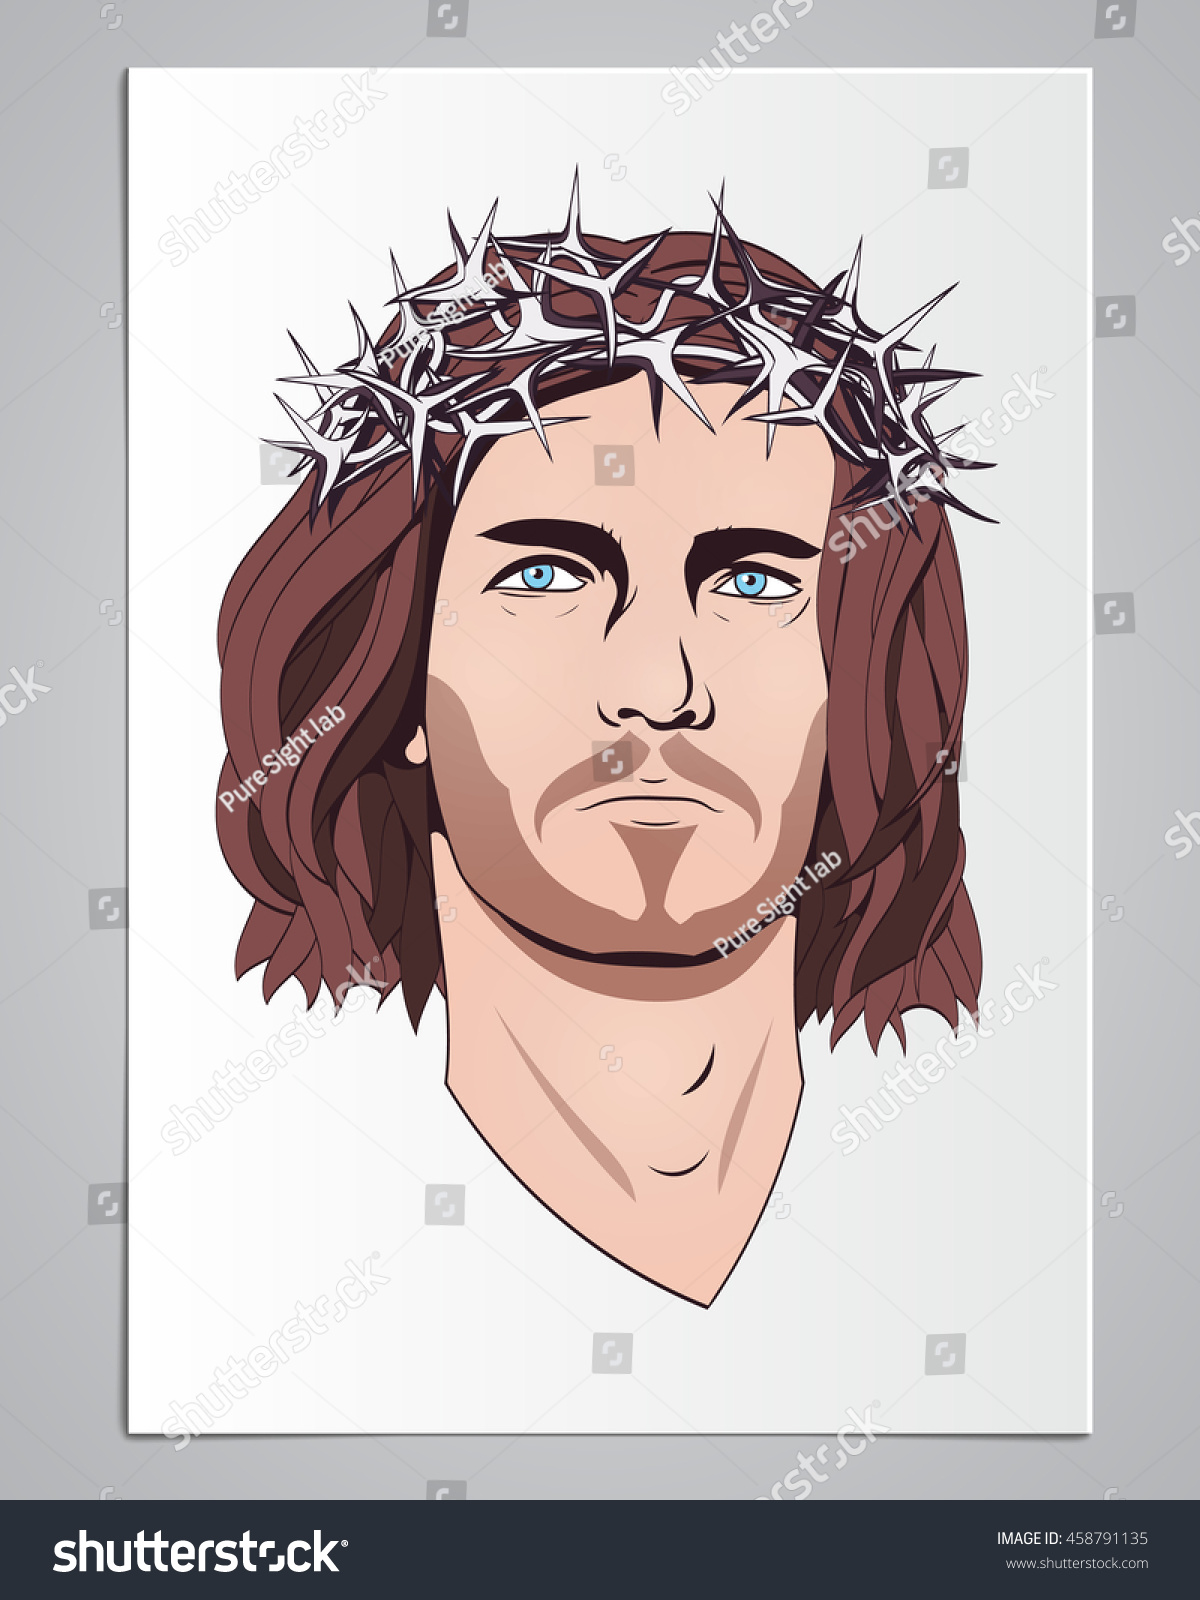 Jesus Christ, Contour Image Background White Paper Long Hair, A Crown Of